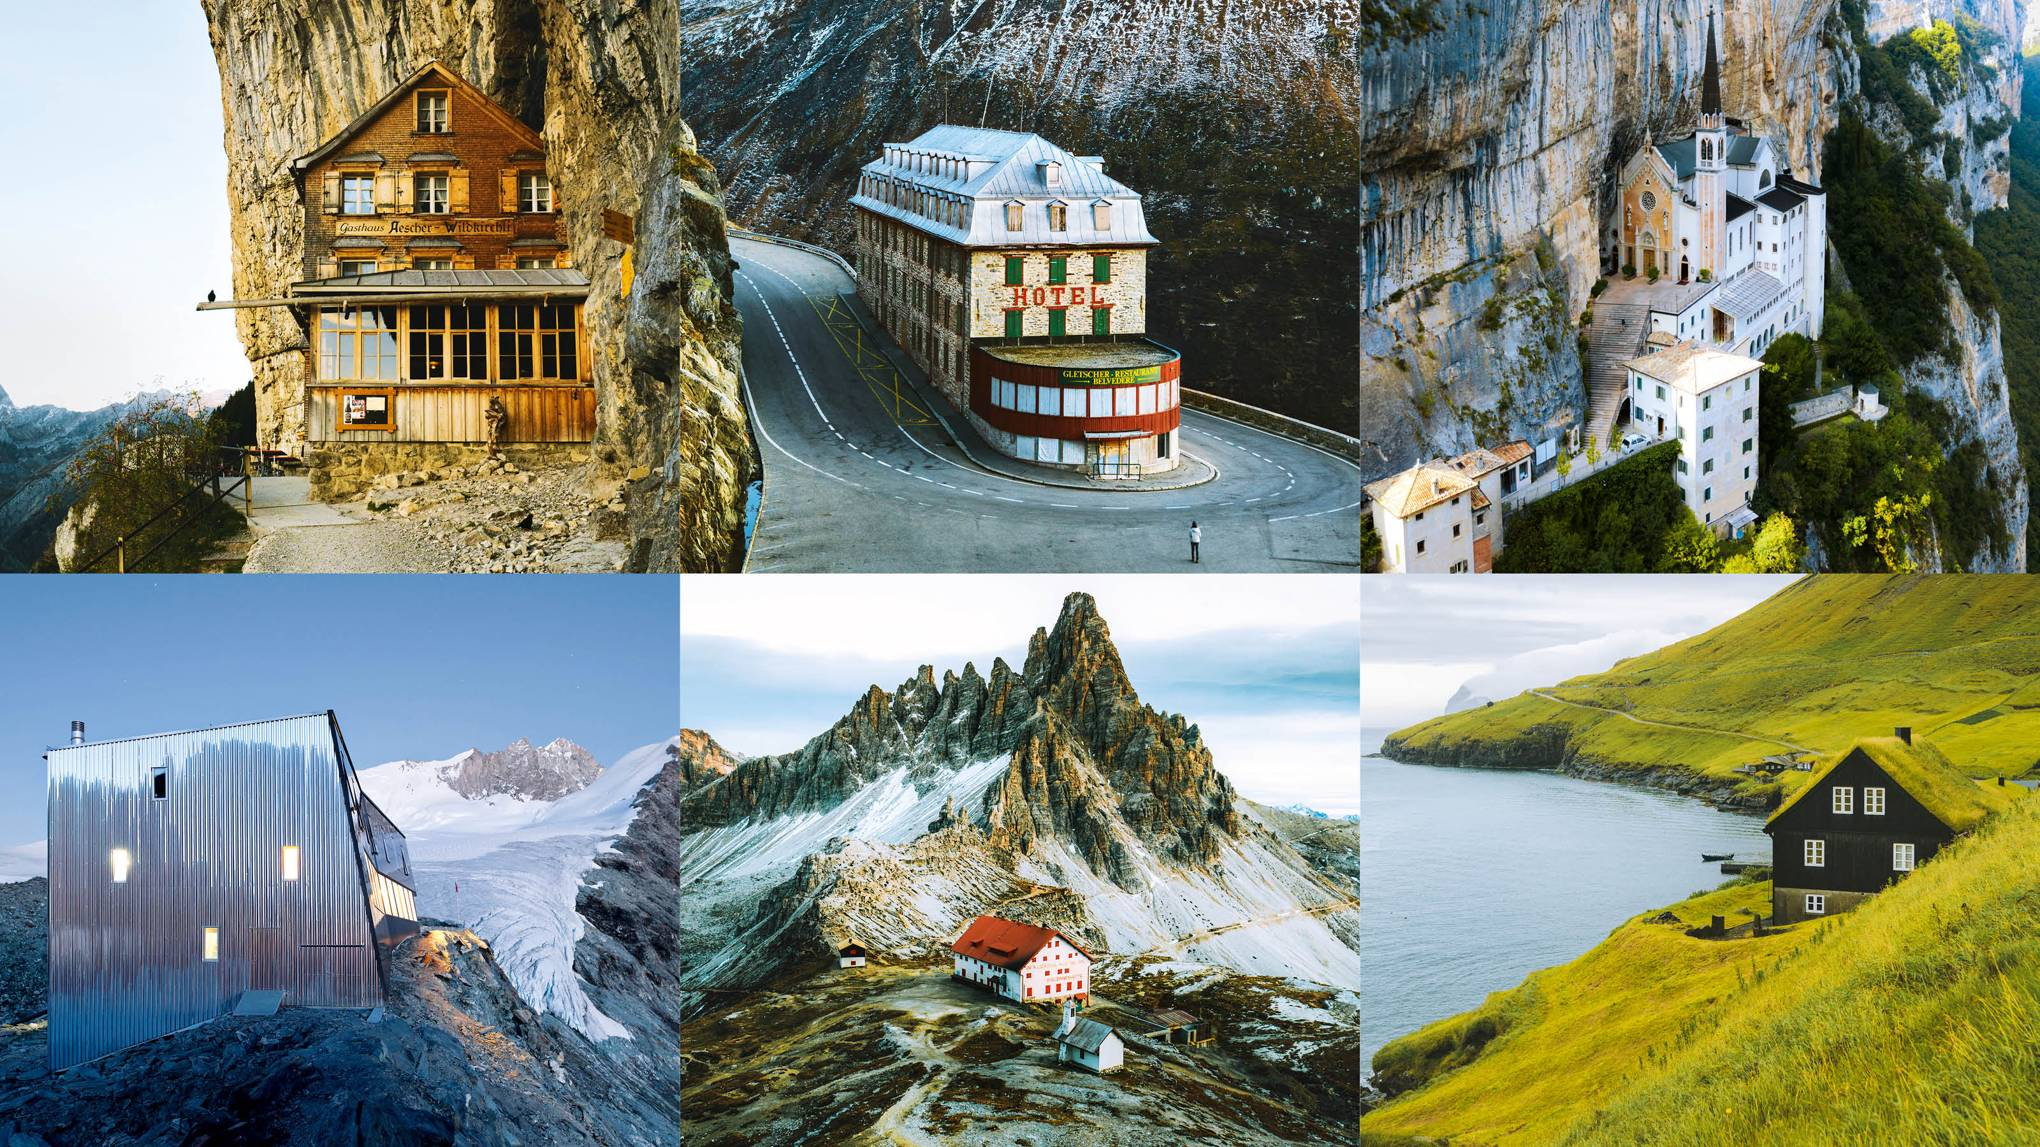 Set in stone: our favourite mountain architecture